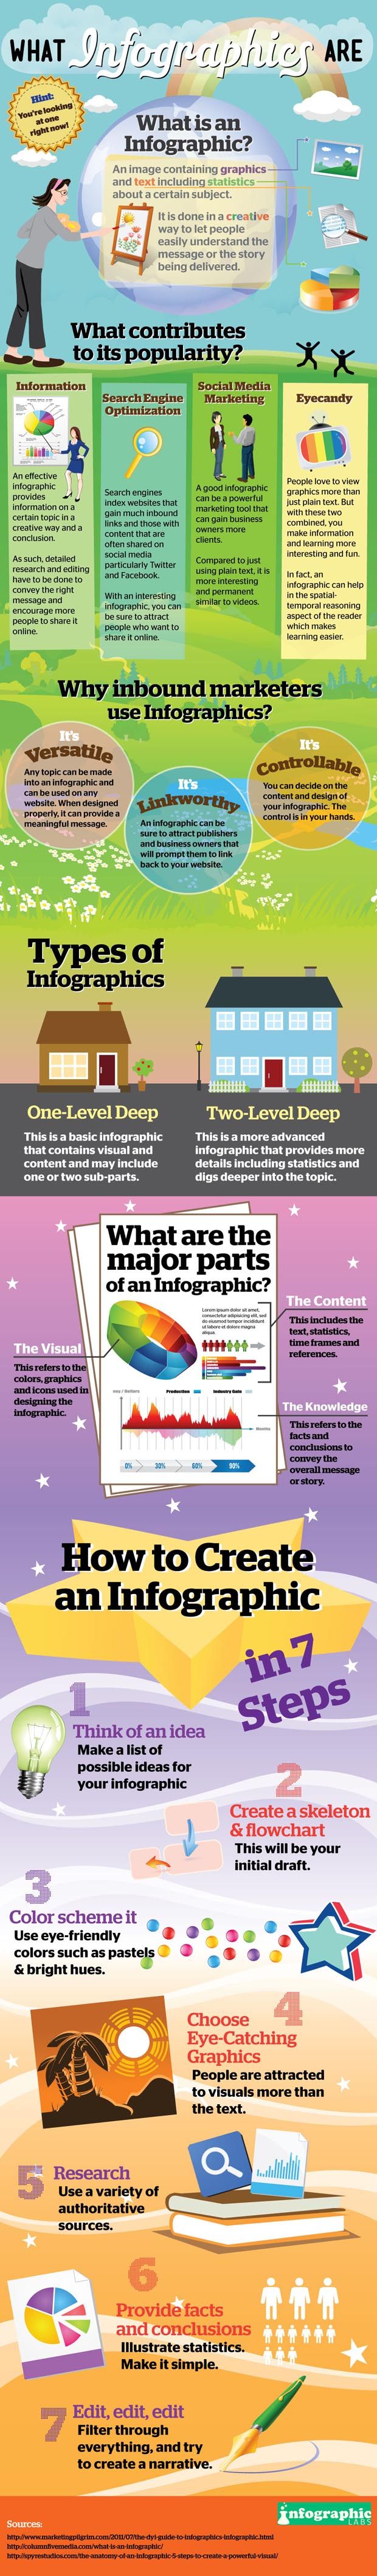 Tips tp create an engaging infographic